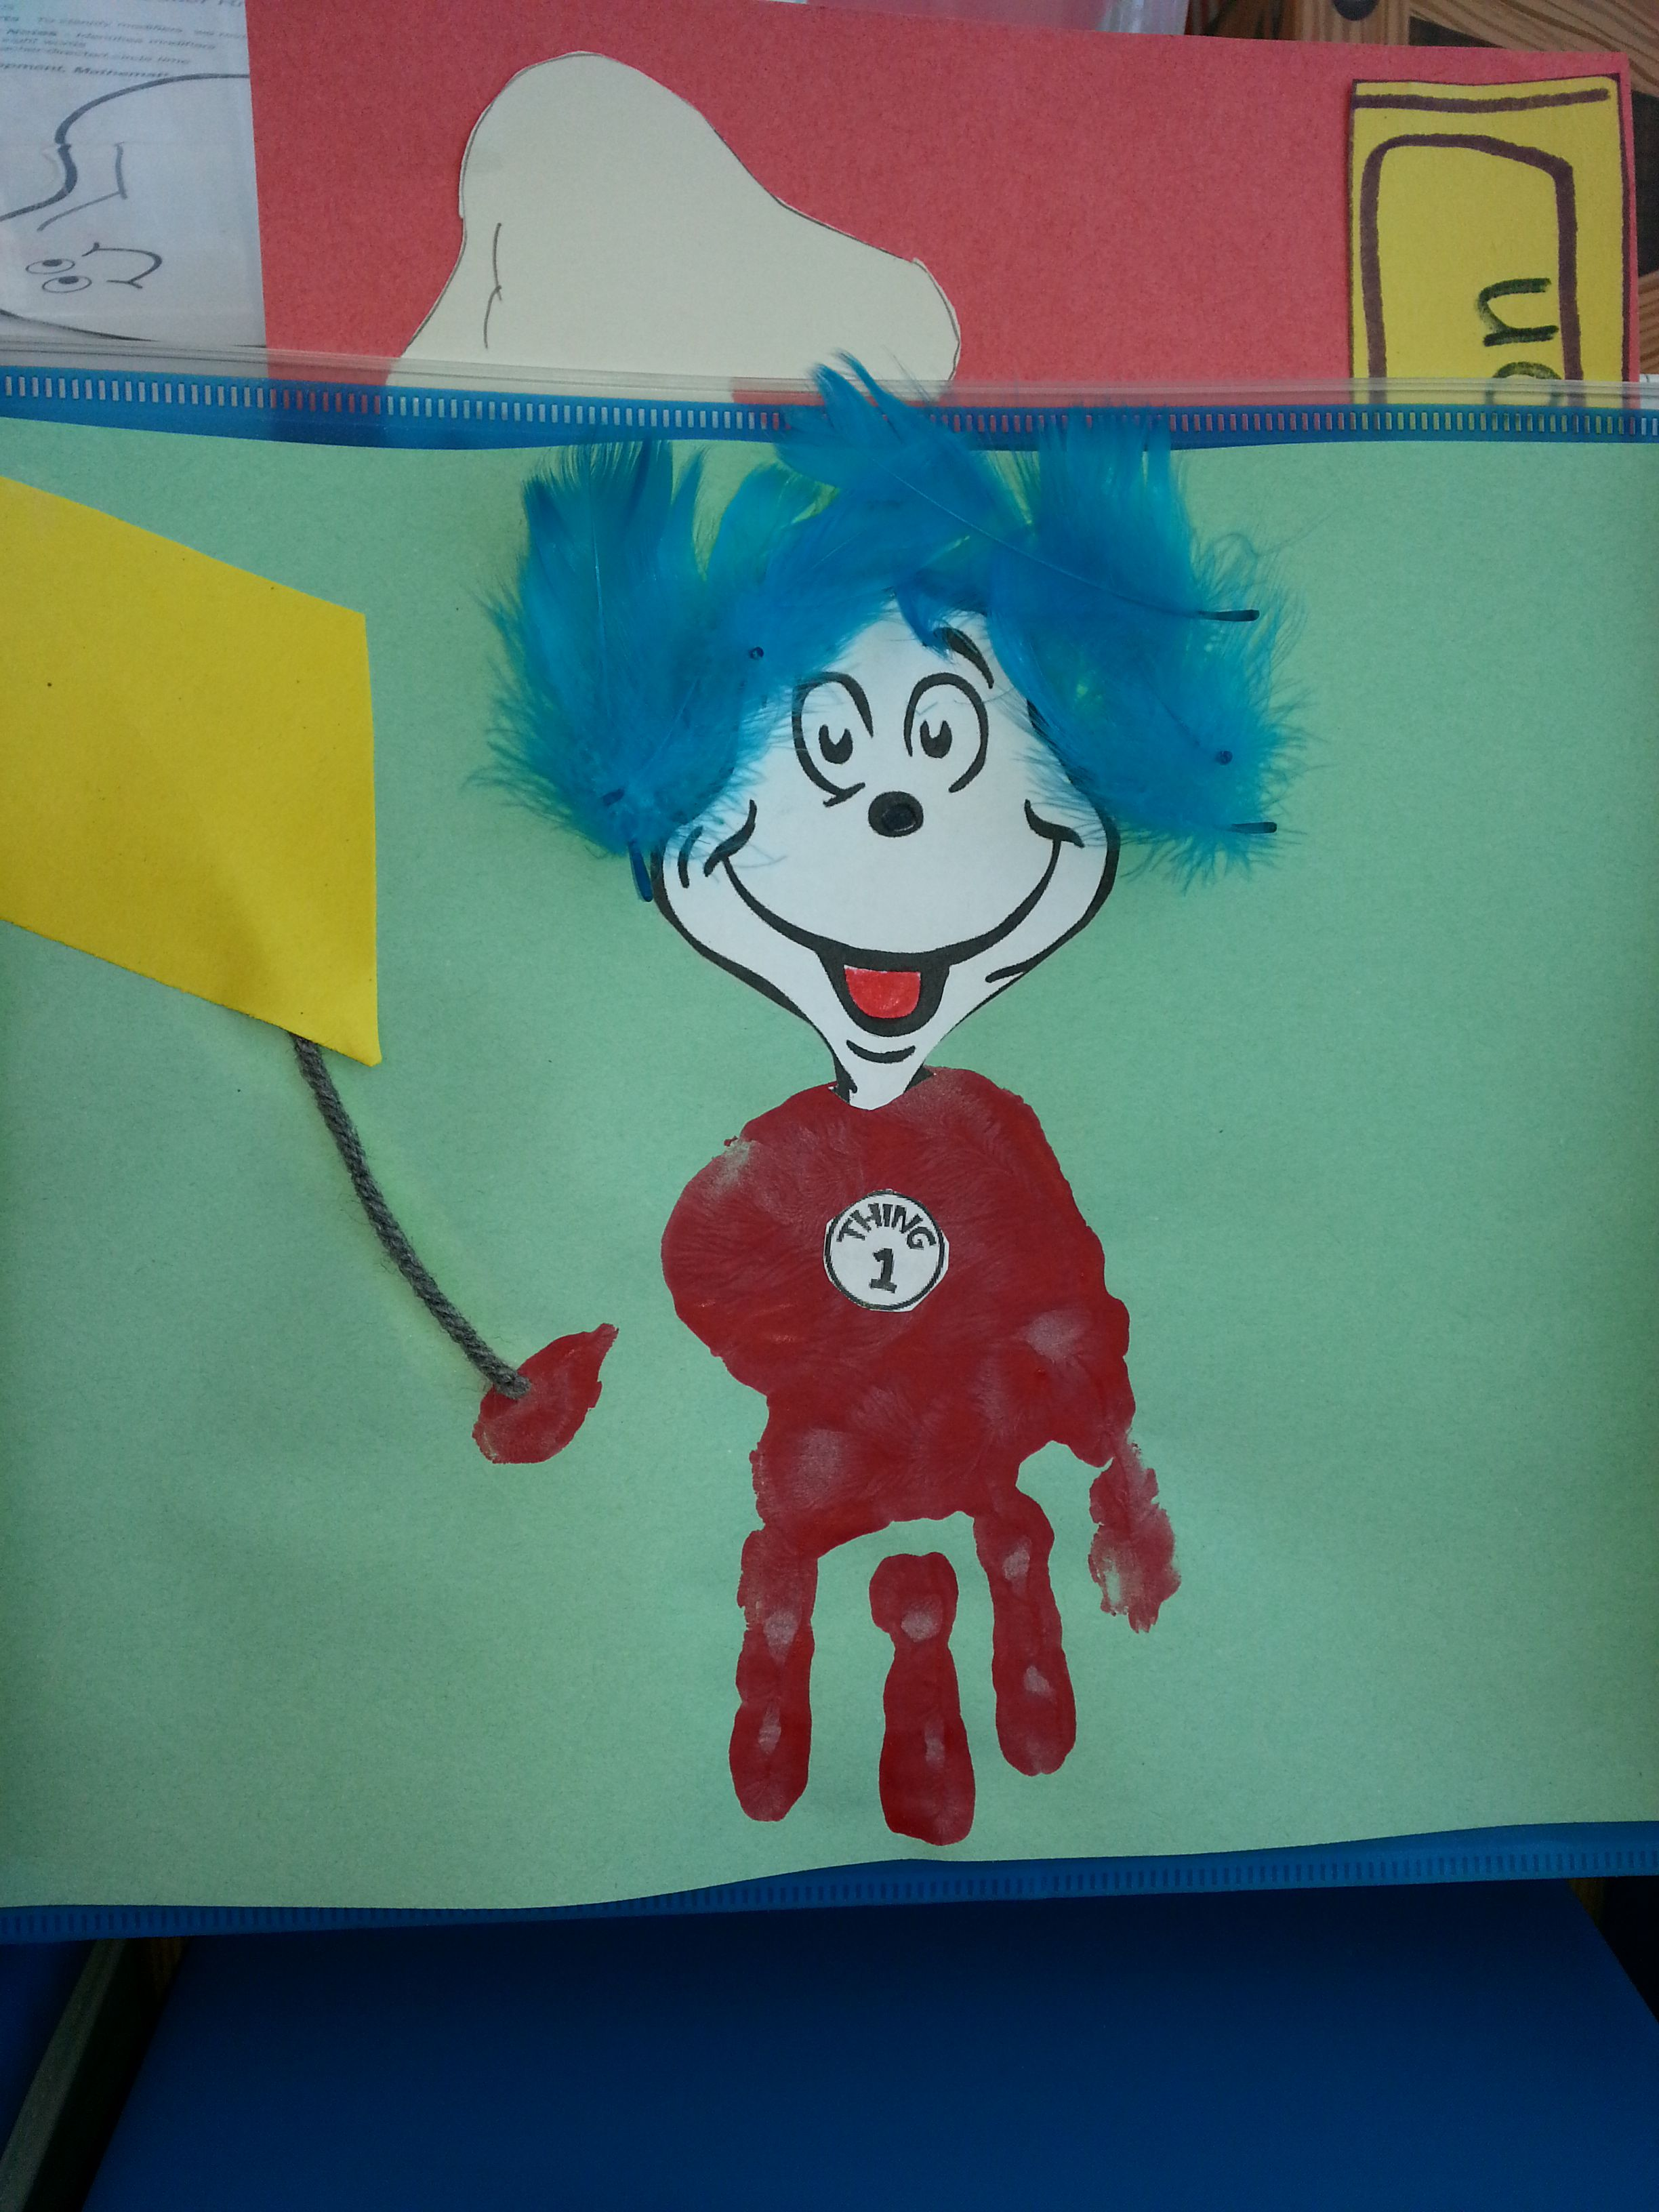 Thing 1 Cubby Tag Ides For Teachers Looking For A March Or Dr Seuss Theme I Used My Students